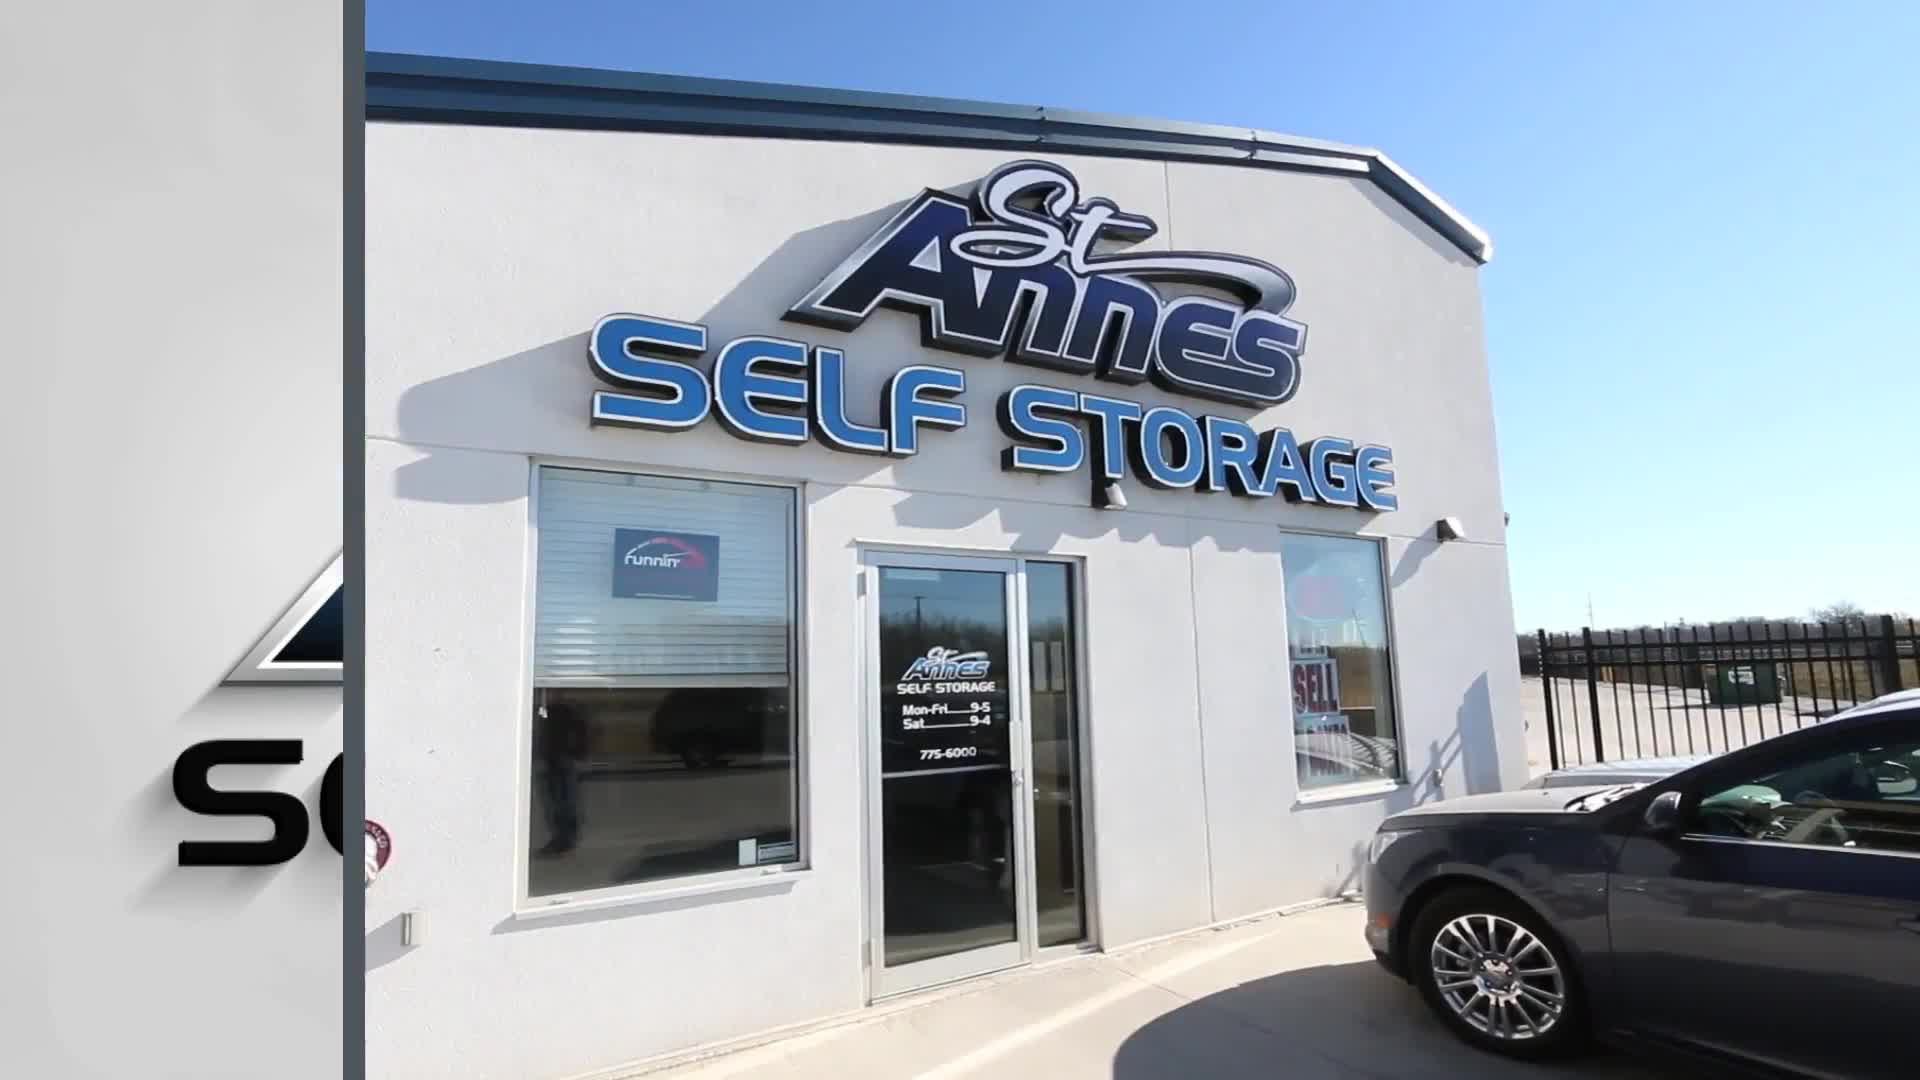 St Anne's Self Storage - Moving Services & Storage Facilities - 204-775-6000